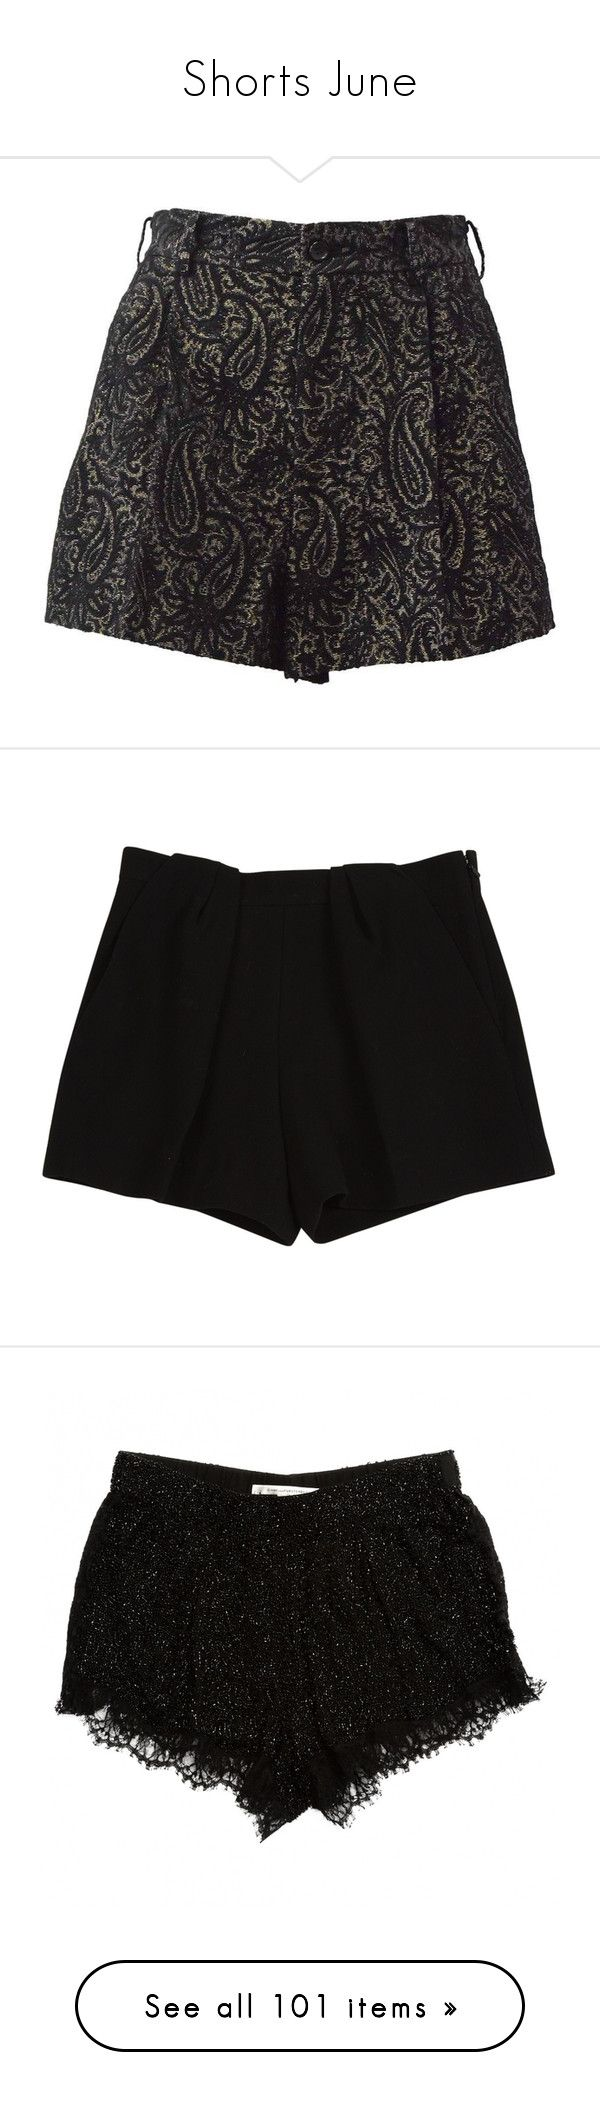 """""""Shorts June"""" by ravenleeart ❤ liked on Polyvore featuring shorts, black, mini shorts, mini short shorts, black and gold shorts, hot shorts, hot short shorts, bottoms, pantaloncini and women clothing shorts"""